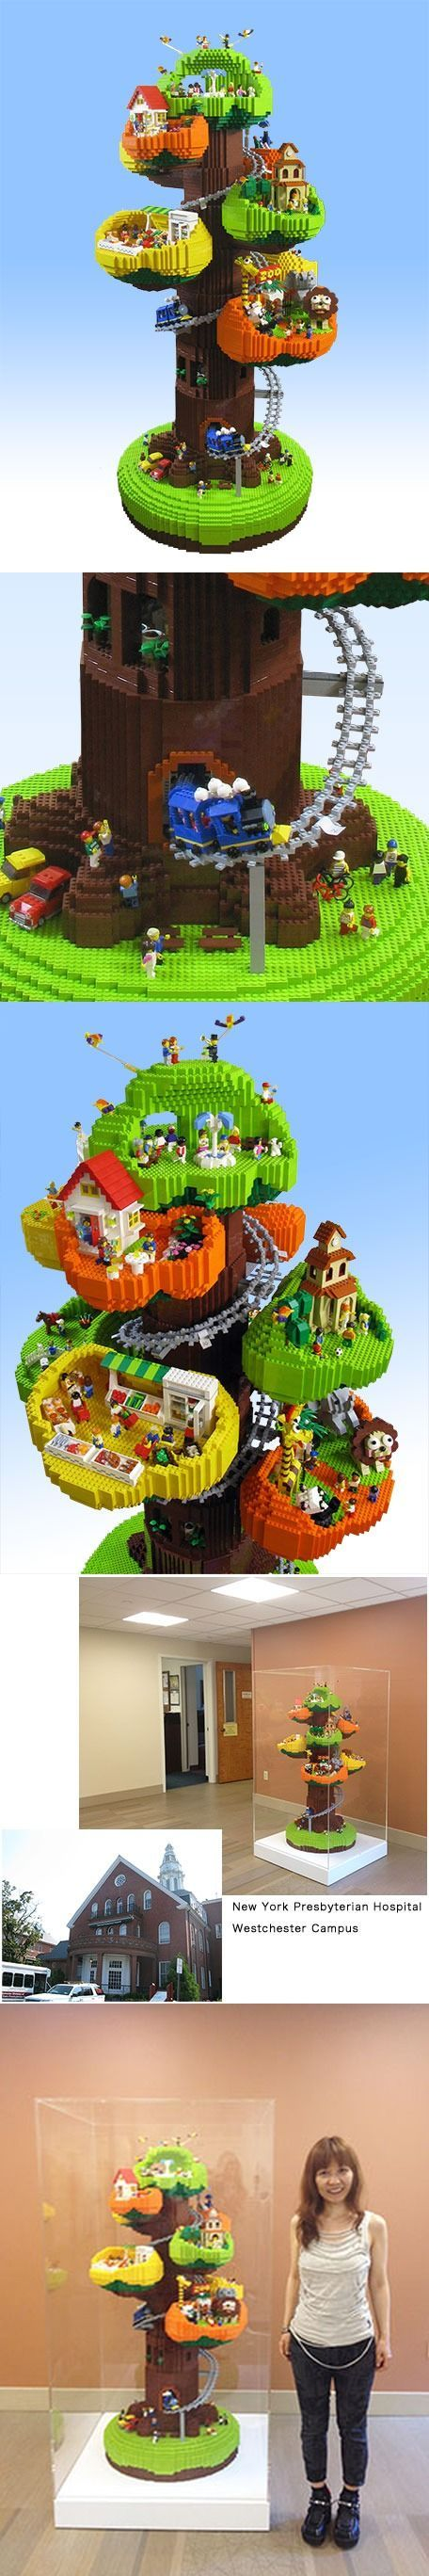 best alberto images on pinterest bricolage crafts for kids and